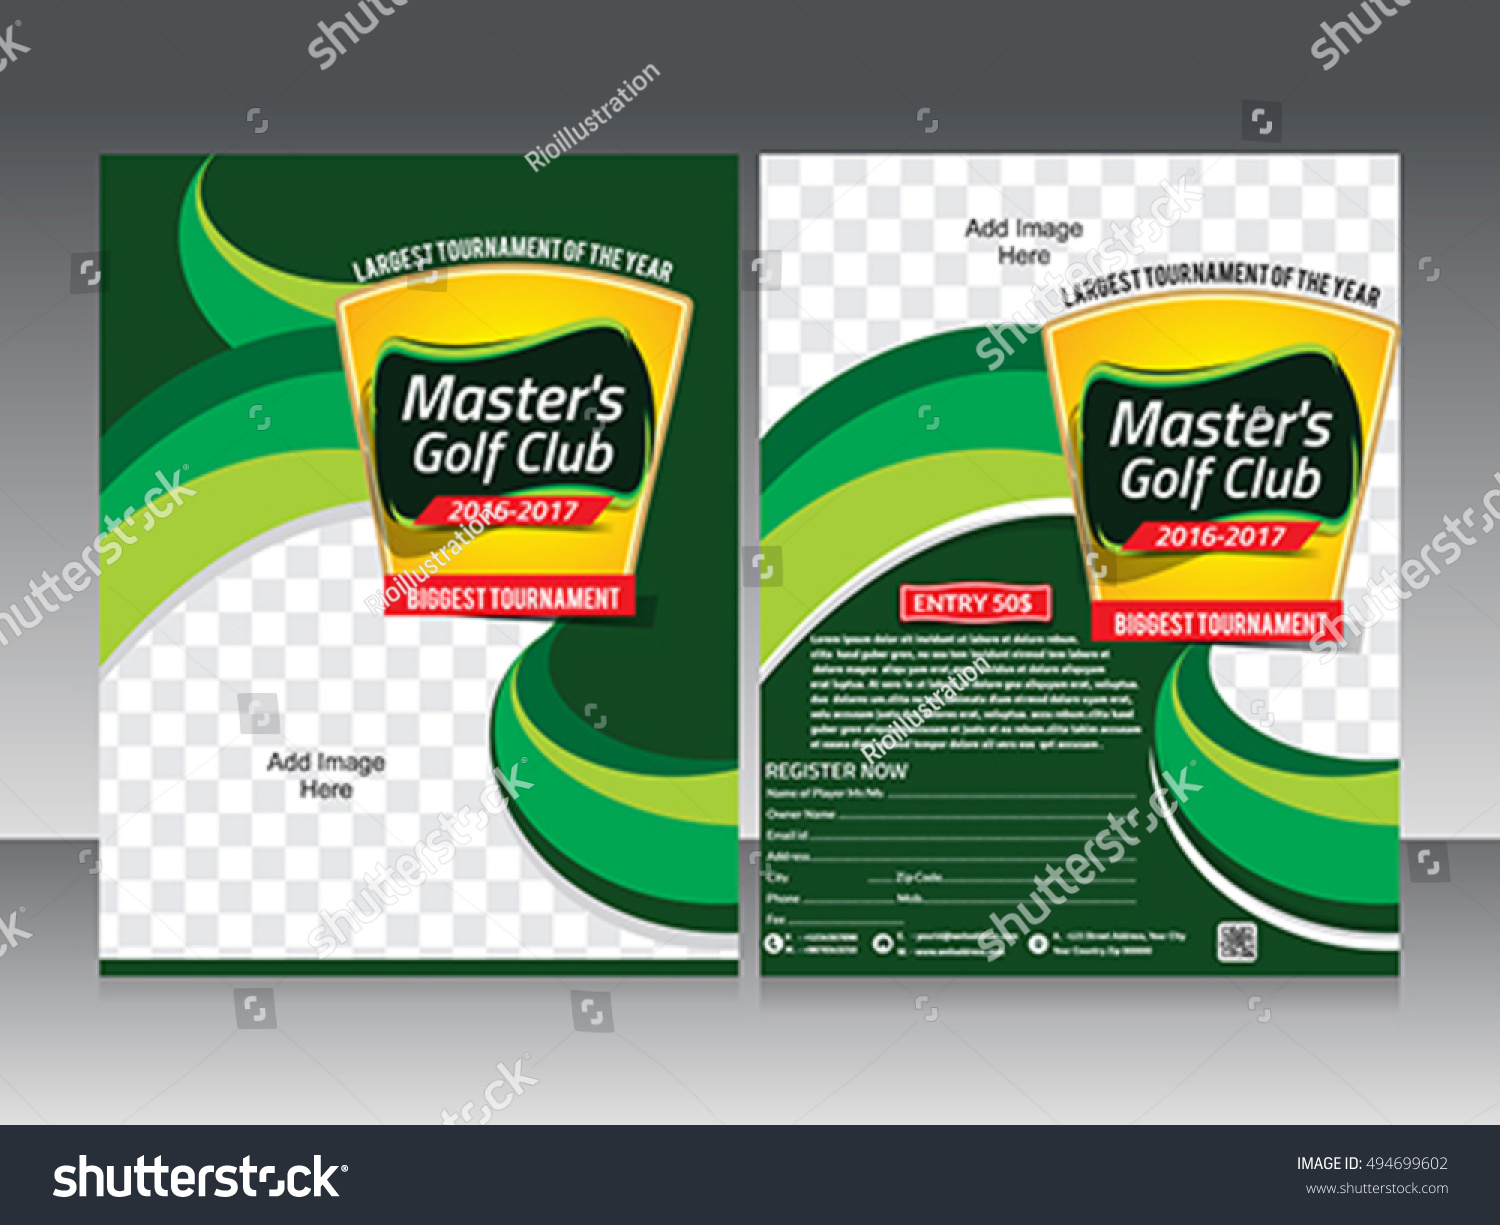 Golf Tournament Flyer Template Design U0026 Poster Vector Illustration